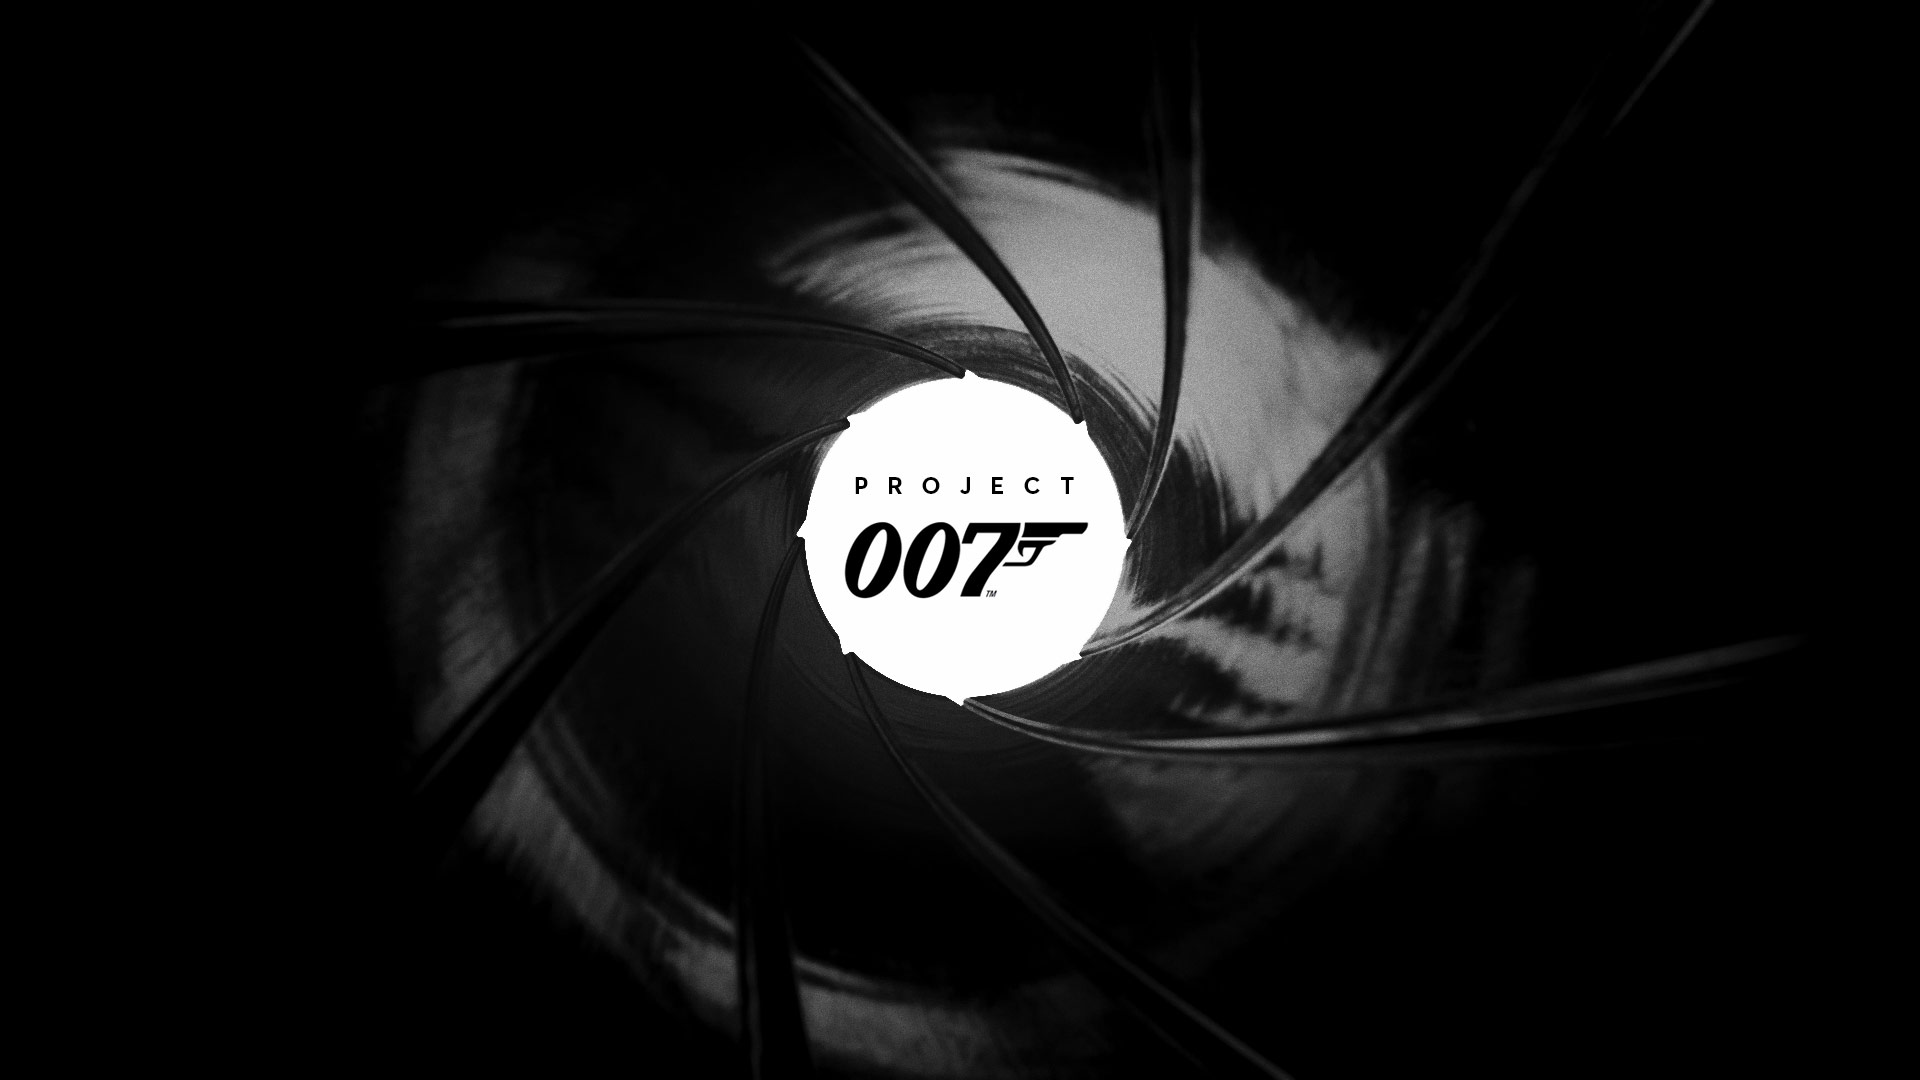 Project 007: New details about the James Bond game from the Hitman makers